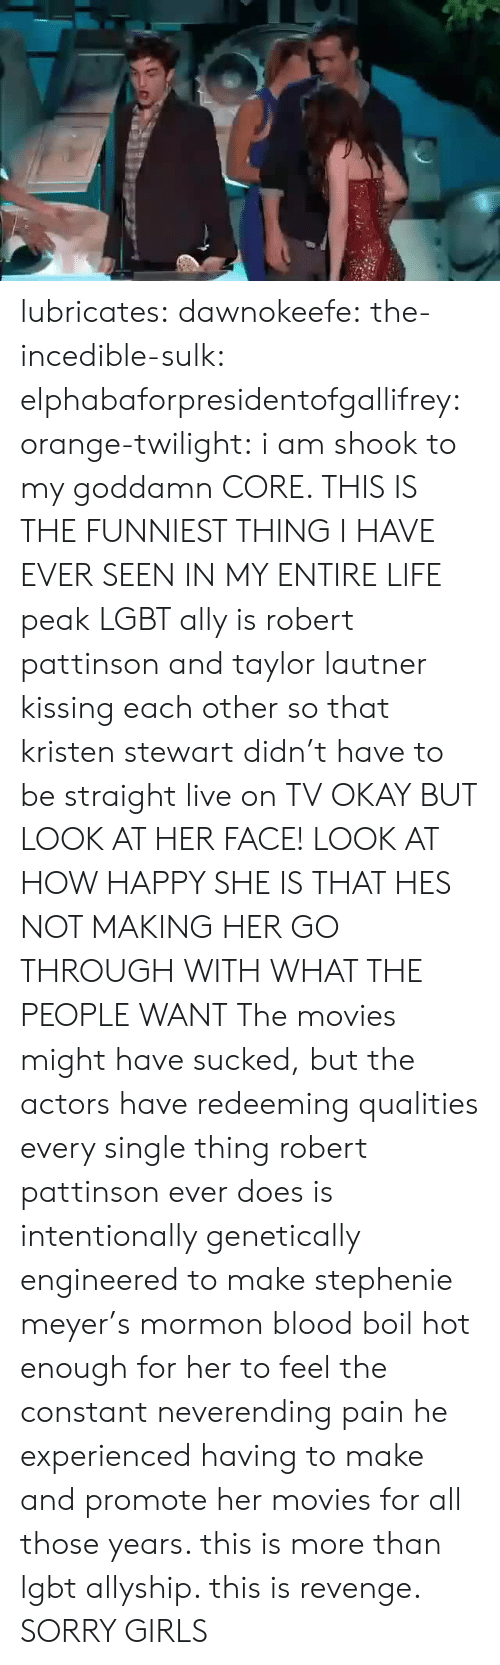 Girls, Lgbt, and Life: lubricates: dawnokeefe:  the-incedible-sulk:  elphabaforpresidentofgallifrey:  orange-twilight: i am shook to my goddamn CORE. THIS IS THE FUNNIEST THING I HAVE EVER SEEN IN MY ENTIRE LIFE peak LGBT ally is robert pattinson and taylor lautner kissing each other so that kristen stewart didn't have to be straight live on TV   OKAY BUT LOOK AT HER FACE! LOOK AT HOW HAPPY SHE IS THAT HES NOT MAKING HER GO THROUGH WITH WHAT THE PEOPLE WANT  The movies might have sucked, but the actors have redeeming qualities   every single thing robert pattinson ever does is intentionally genetically engineered to make stephenie meyer's mormon blood boil hot enough for her to feel the constant neverending pain he experienced having to make and promote her movies for all those years. this is more than lgbt allyship. this is revenge.  SORRY GIRLS